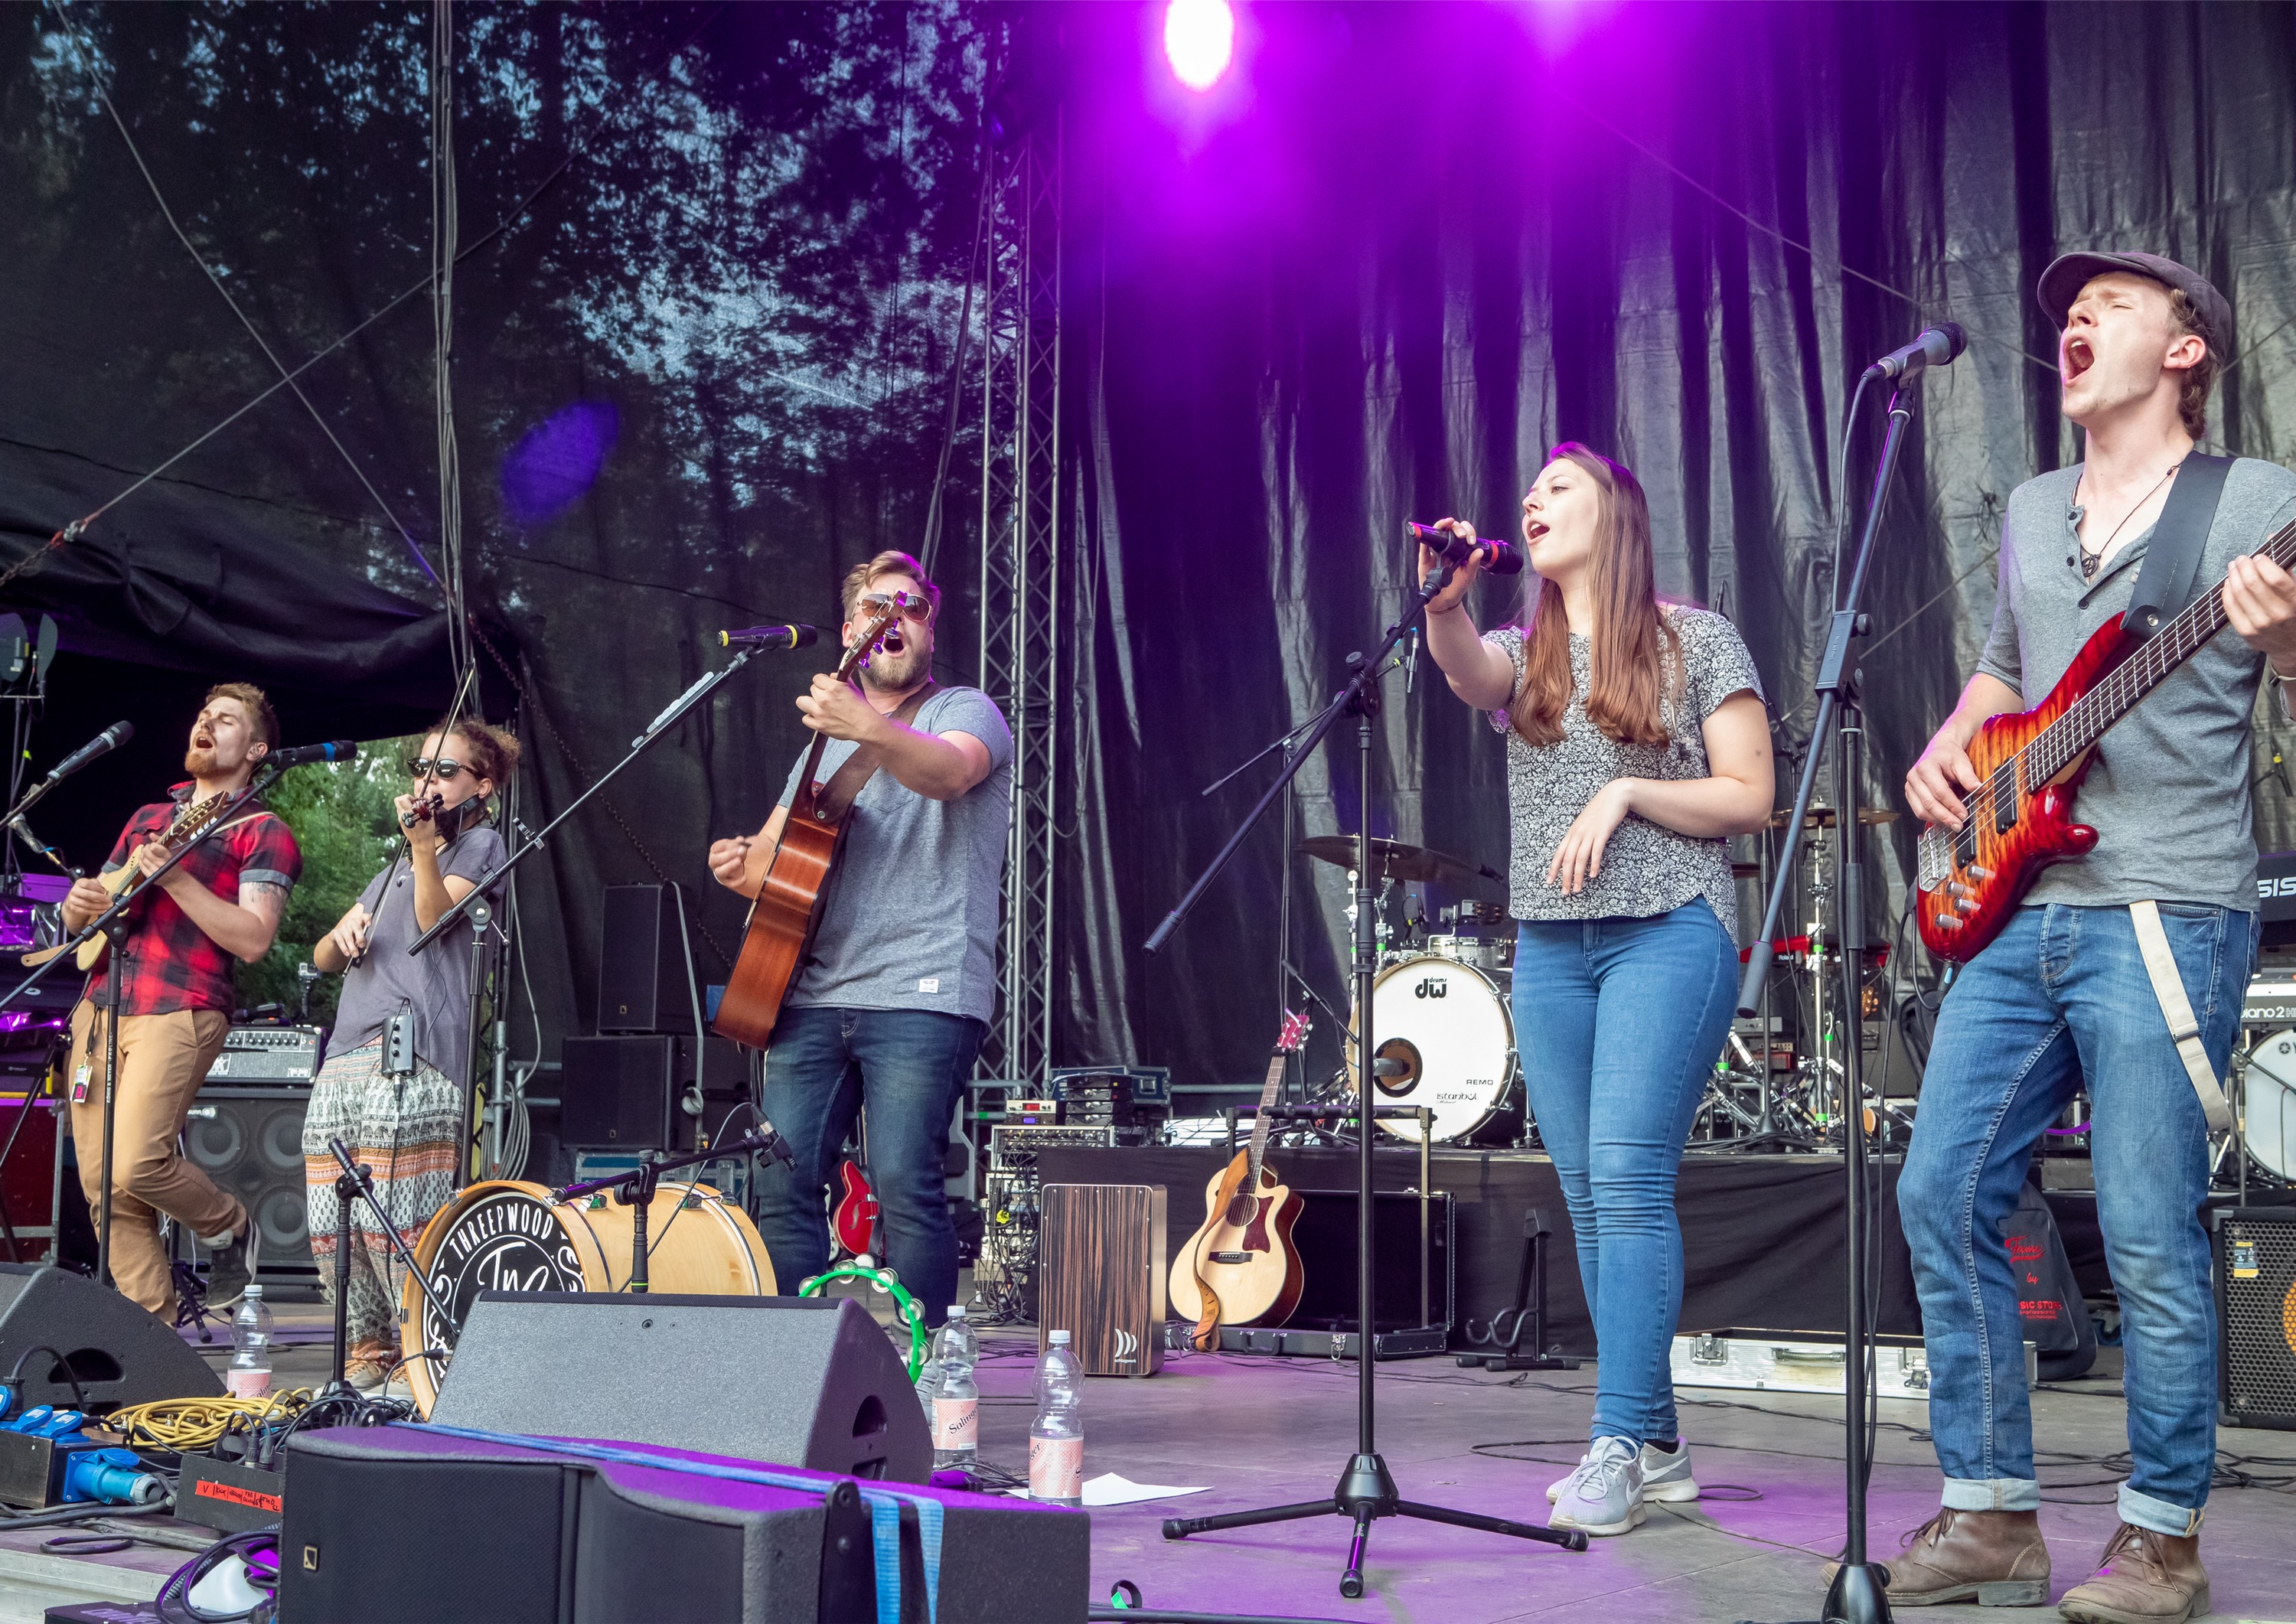 TnS Threepwood N Strings eröffnen Waltroper Parkfest 2019